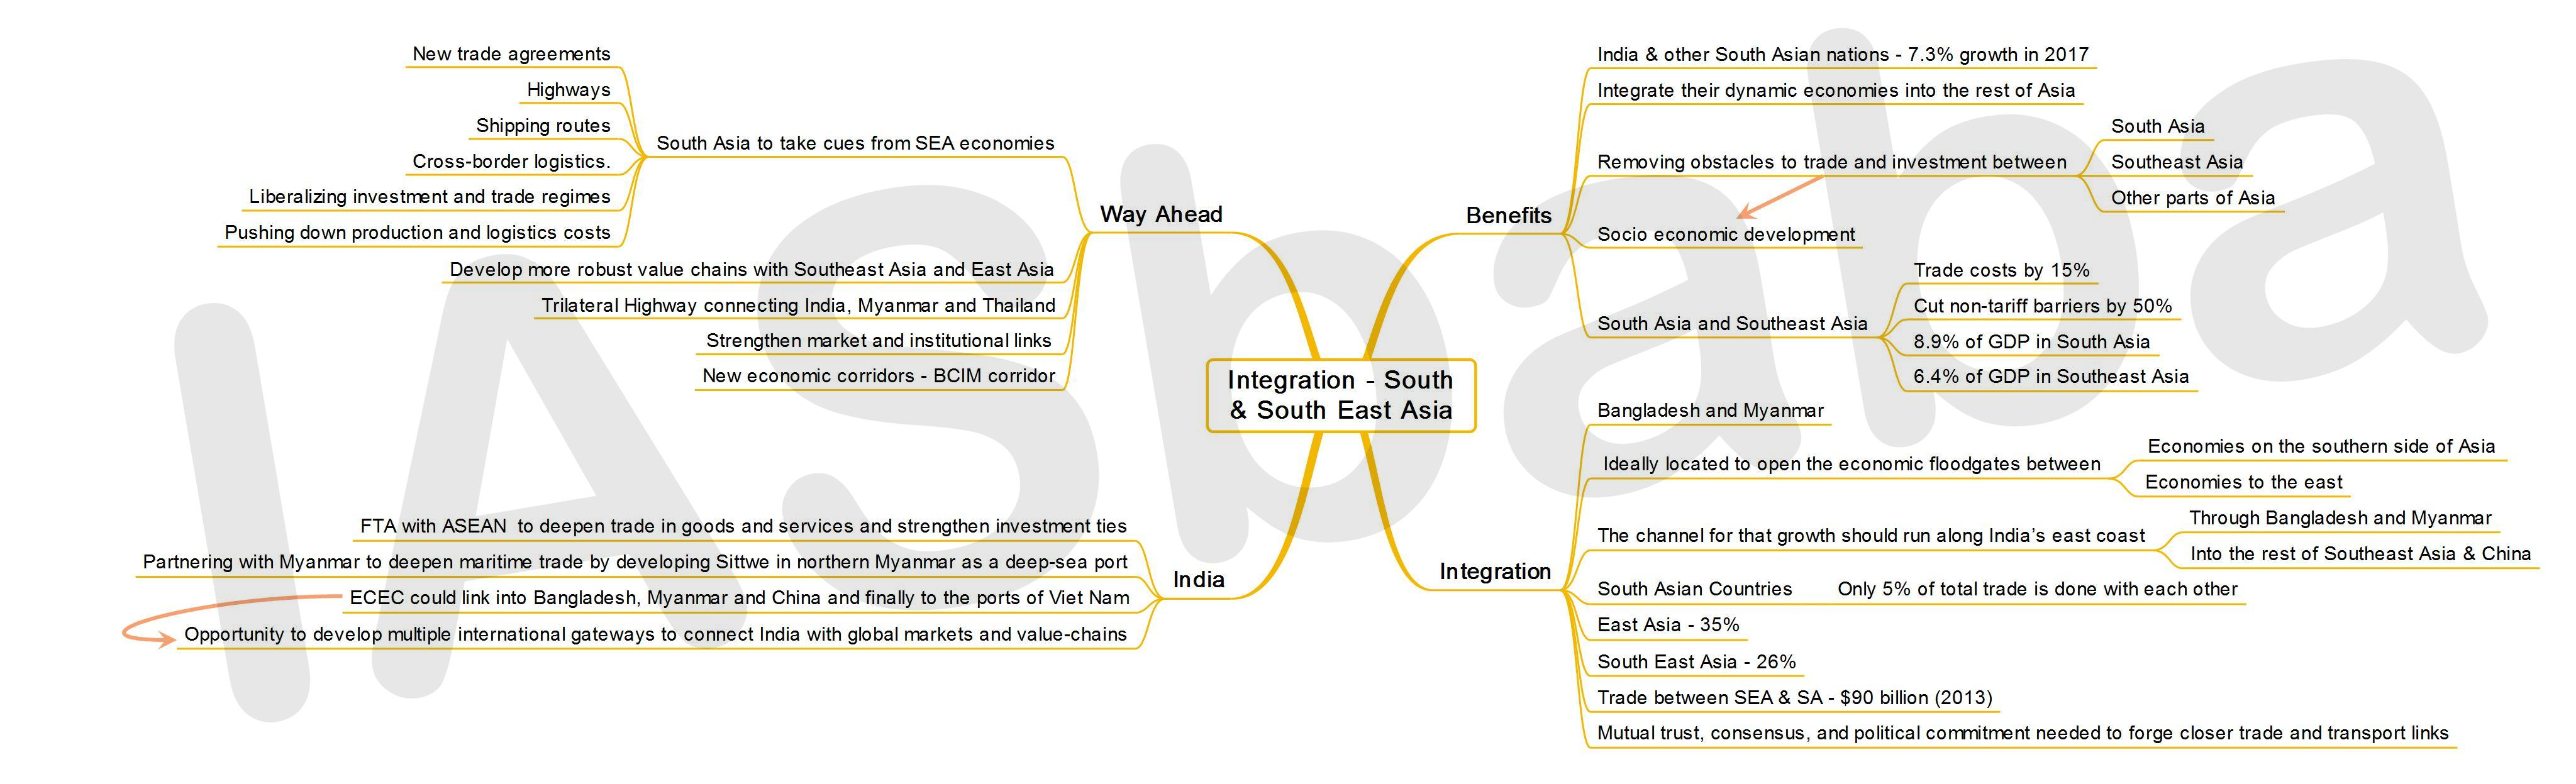 IASbaba's MINDMAP : Issue - Integration - South and South East Asia